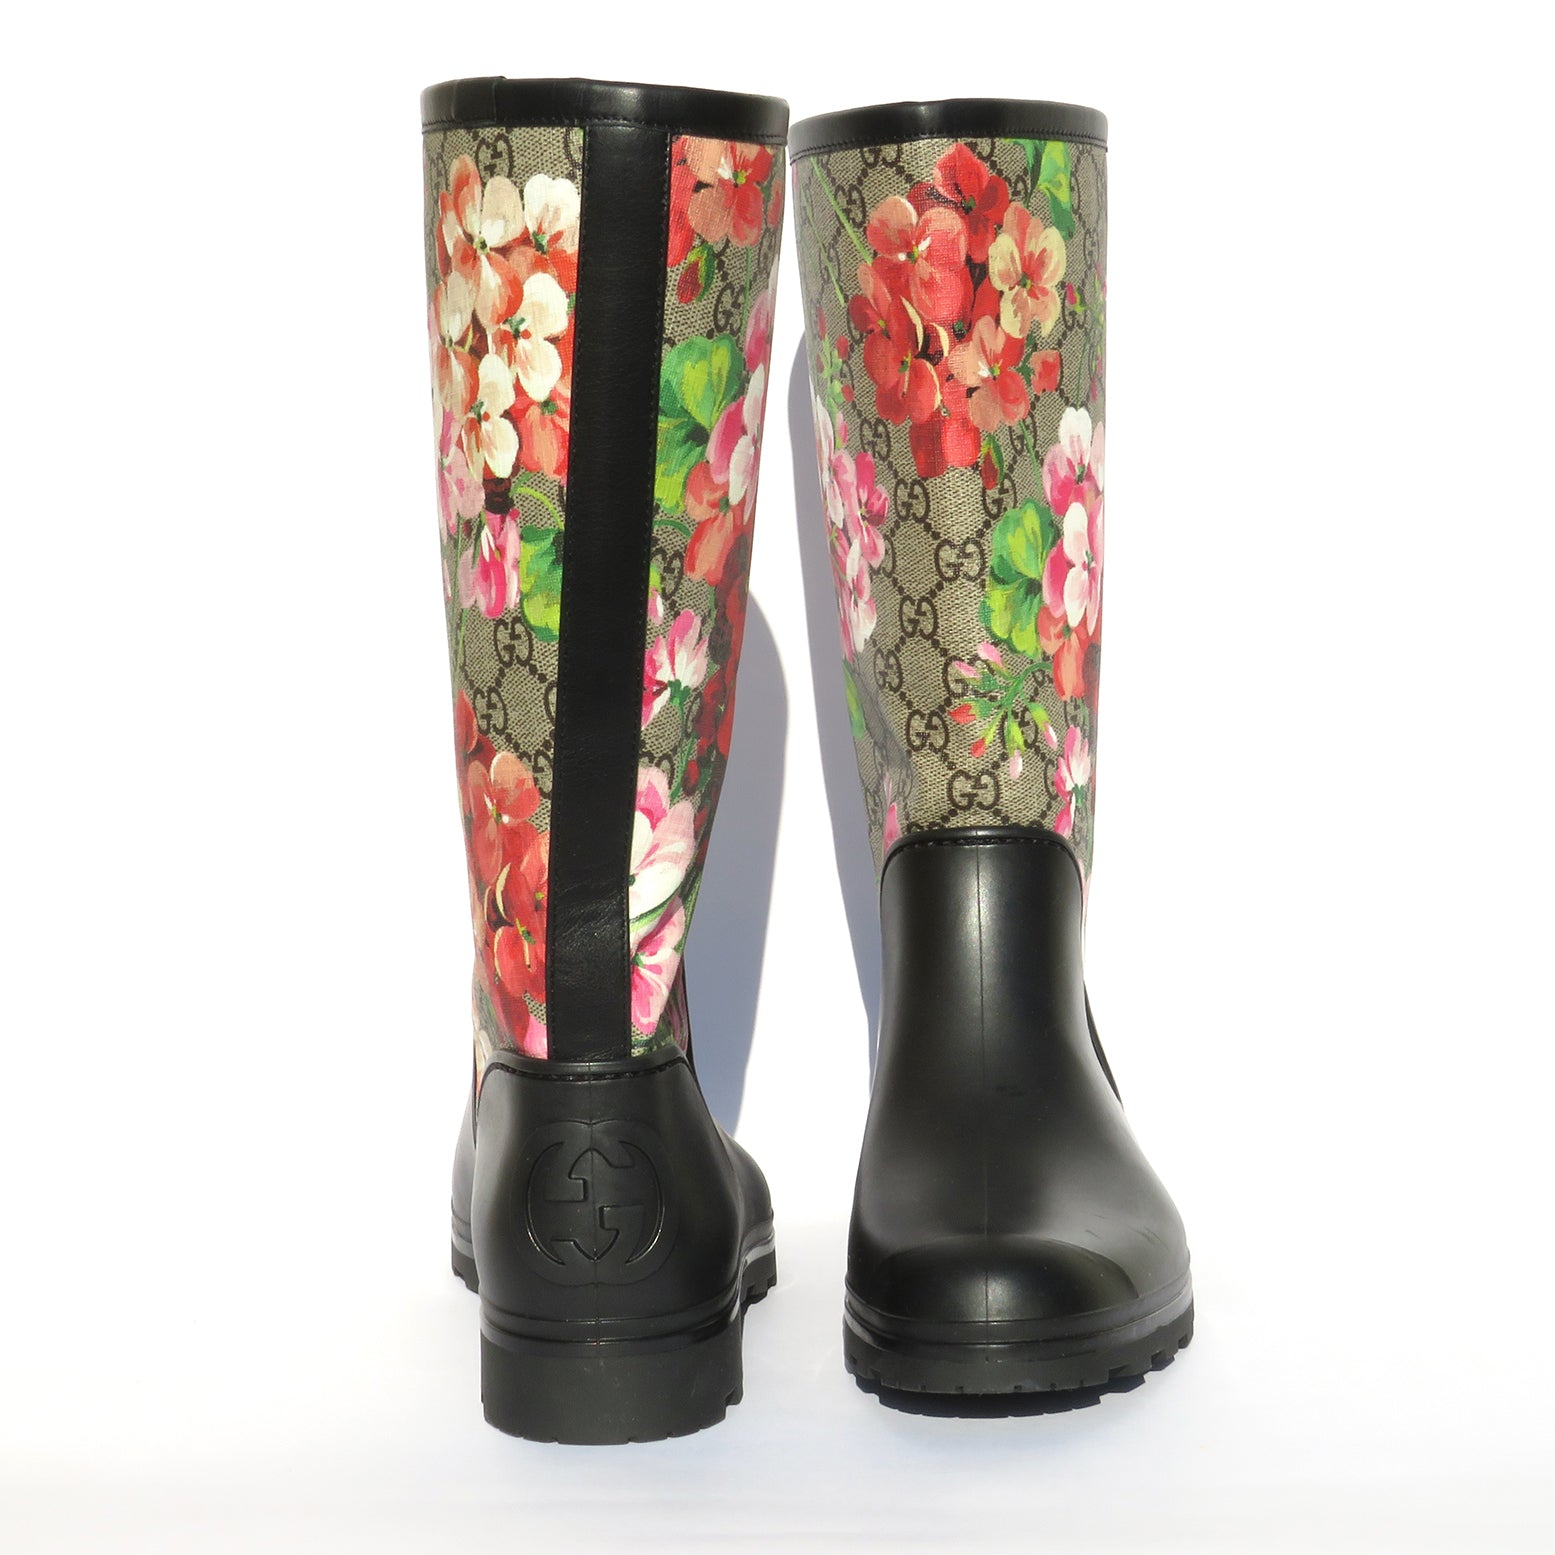 'Sold' GUCCI Prato Supreme GG Blooms Multi Pink Black Rubber Wellies Rain Boots 38 EC